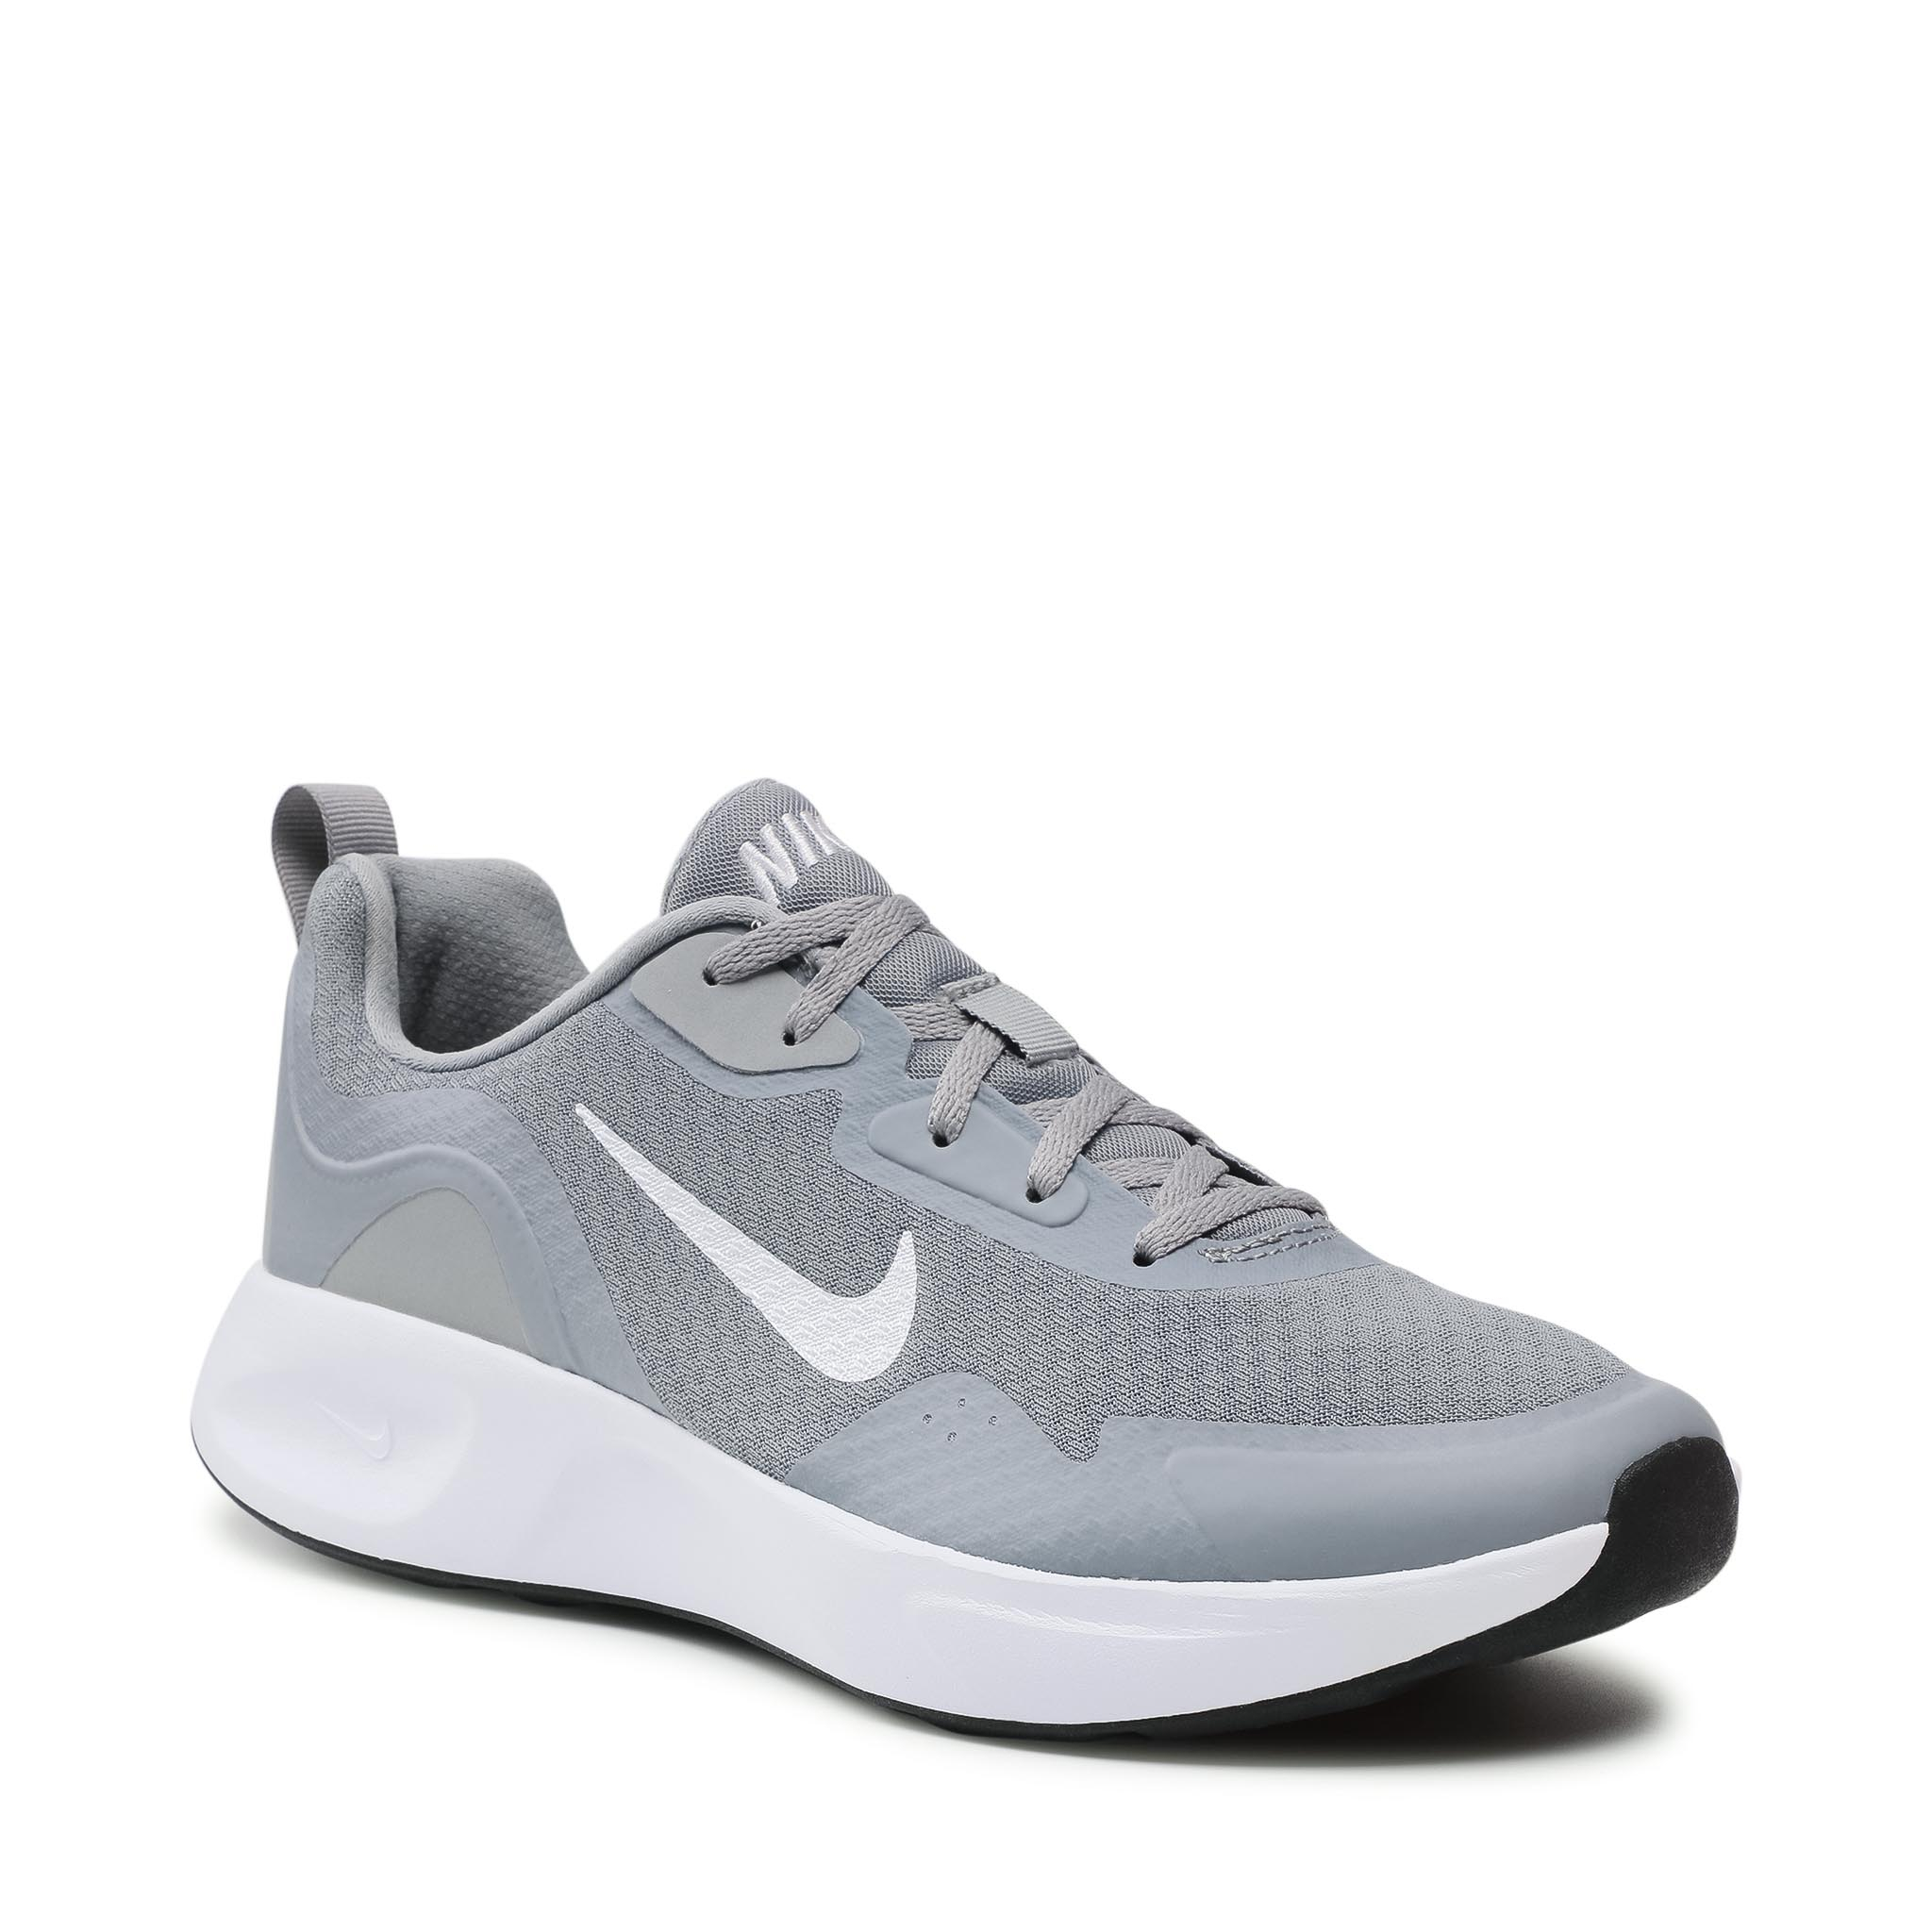 Chaussures NIKE - Wearallday CJ1682 006 Particle Grey/White/Black